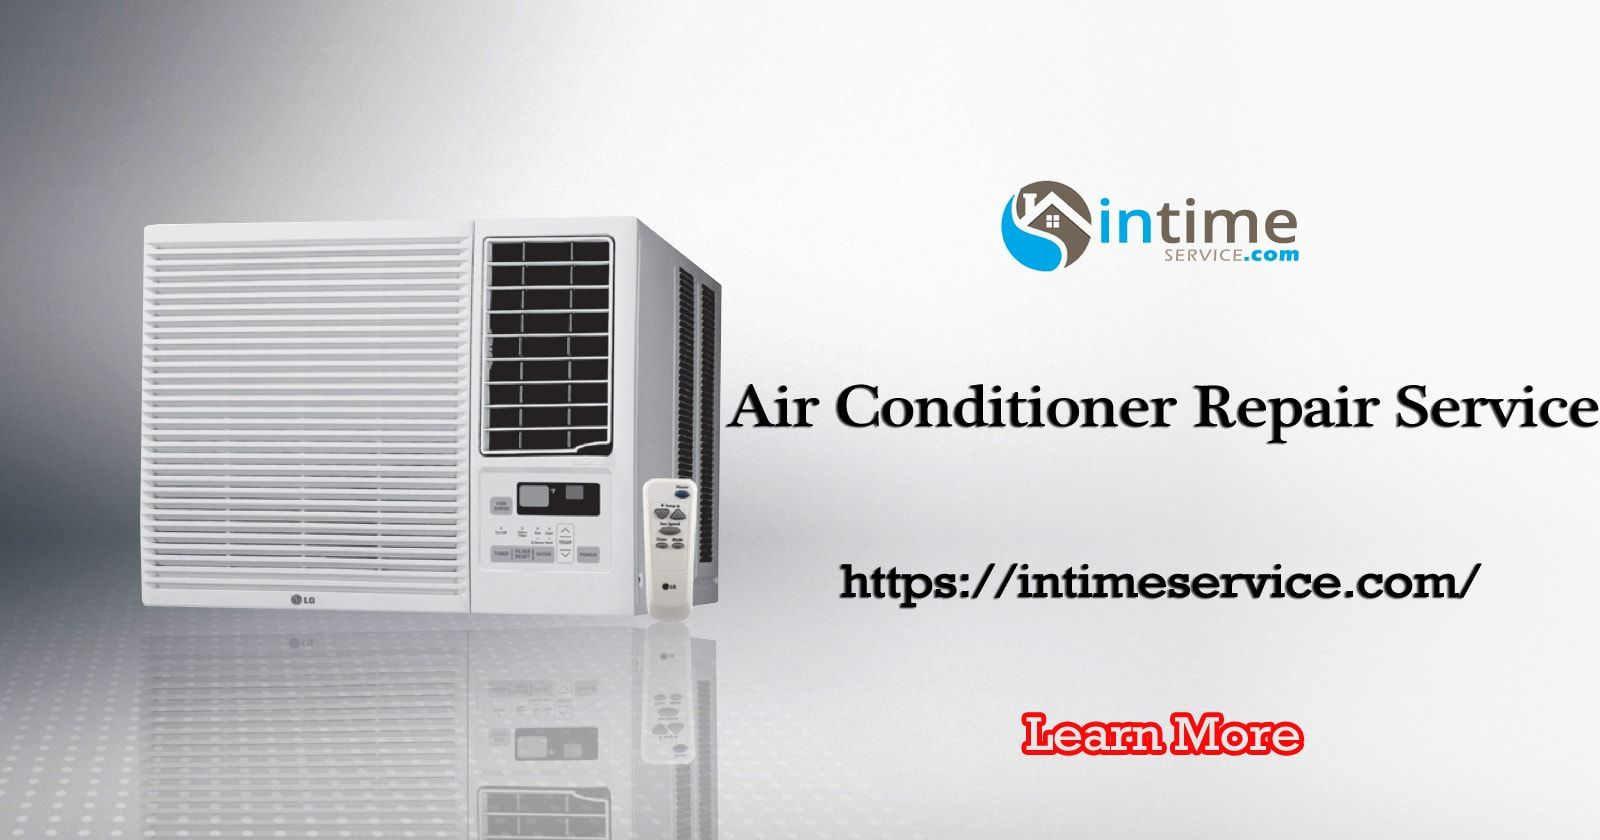 We know how difficult it is when an AC stops working. We